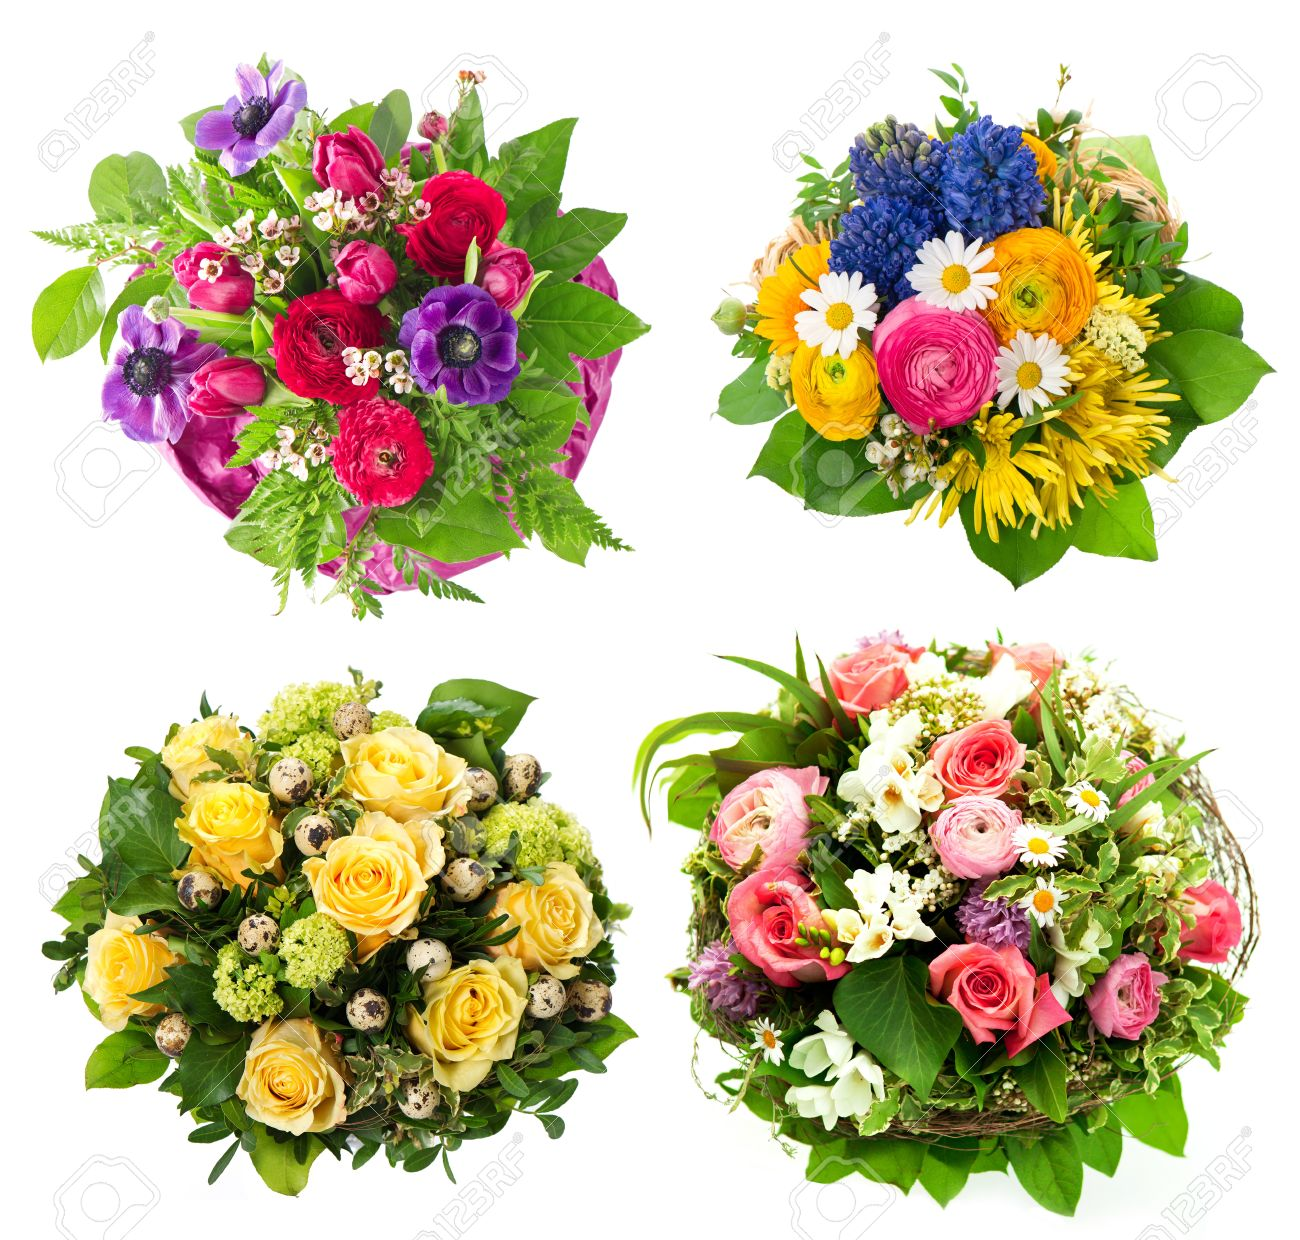 Colorful flowers bouquet roses tulips ranunculus hyacinth colorful flowers bouquet roses tulips ranunculus hyacinth daisy anemone dhlflorist Choice Image